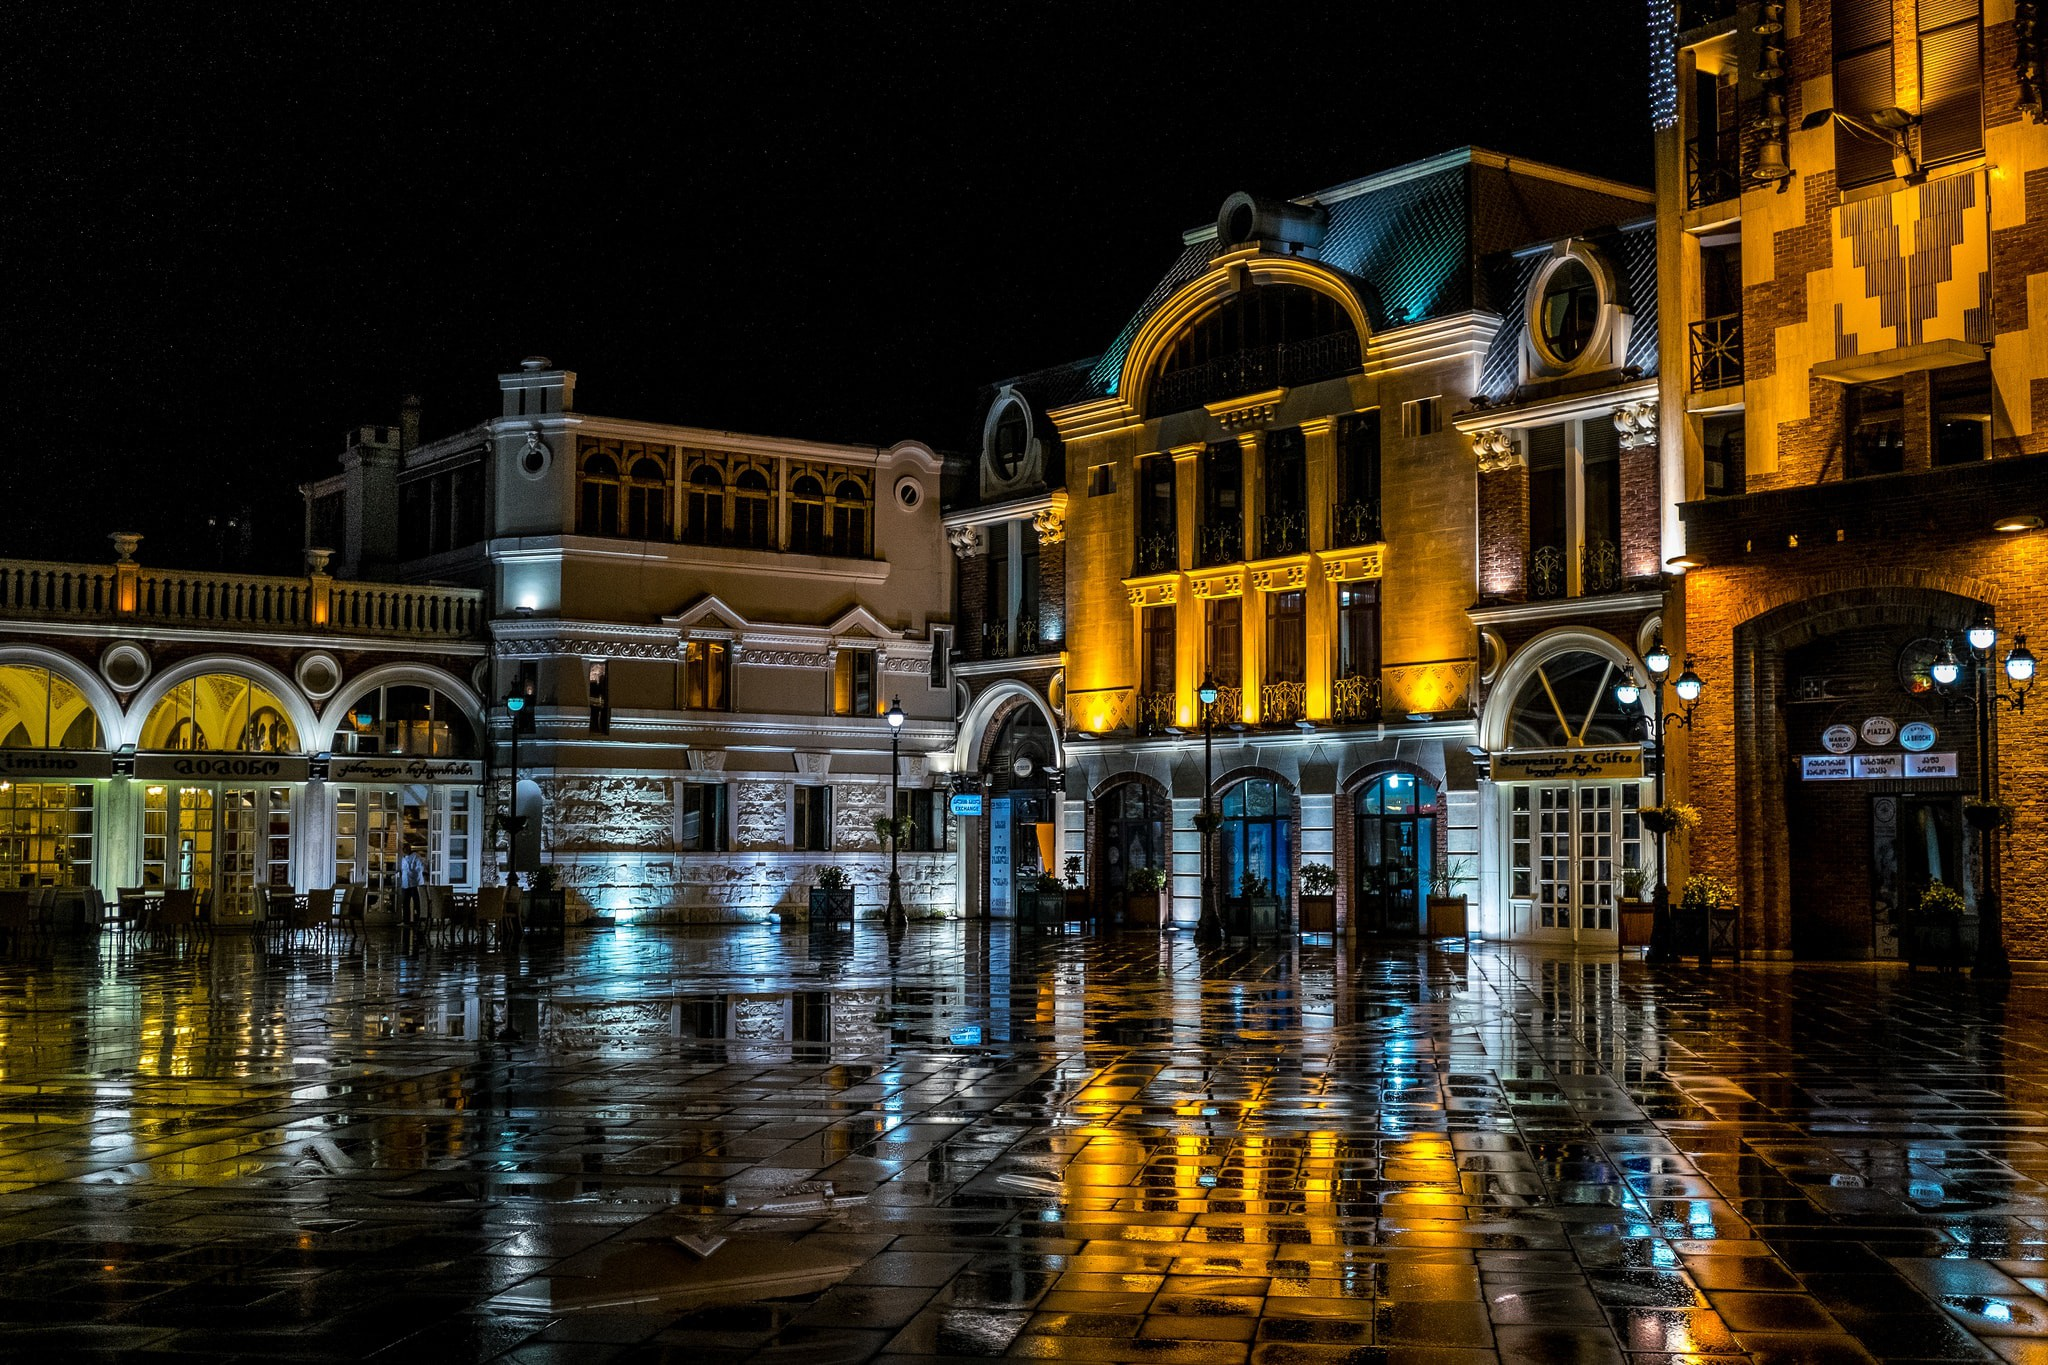 Piazza square | @ jagermesh / Flickr